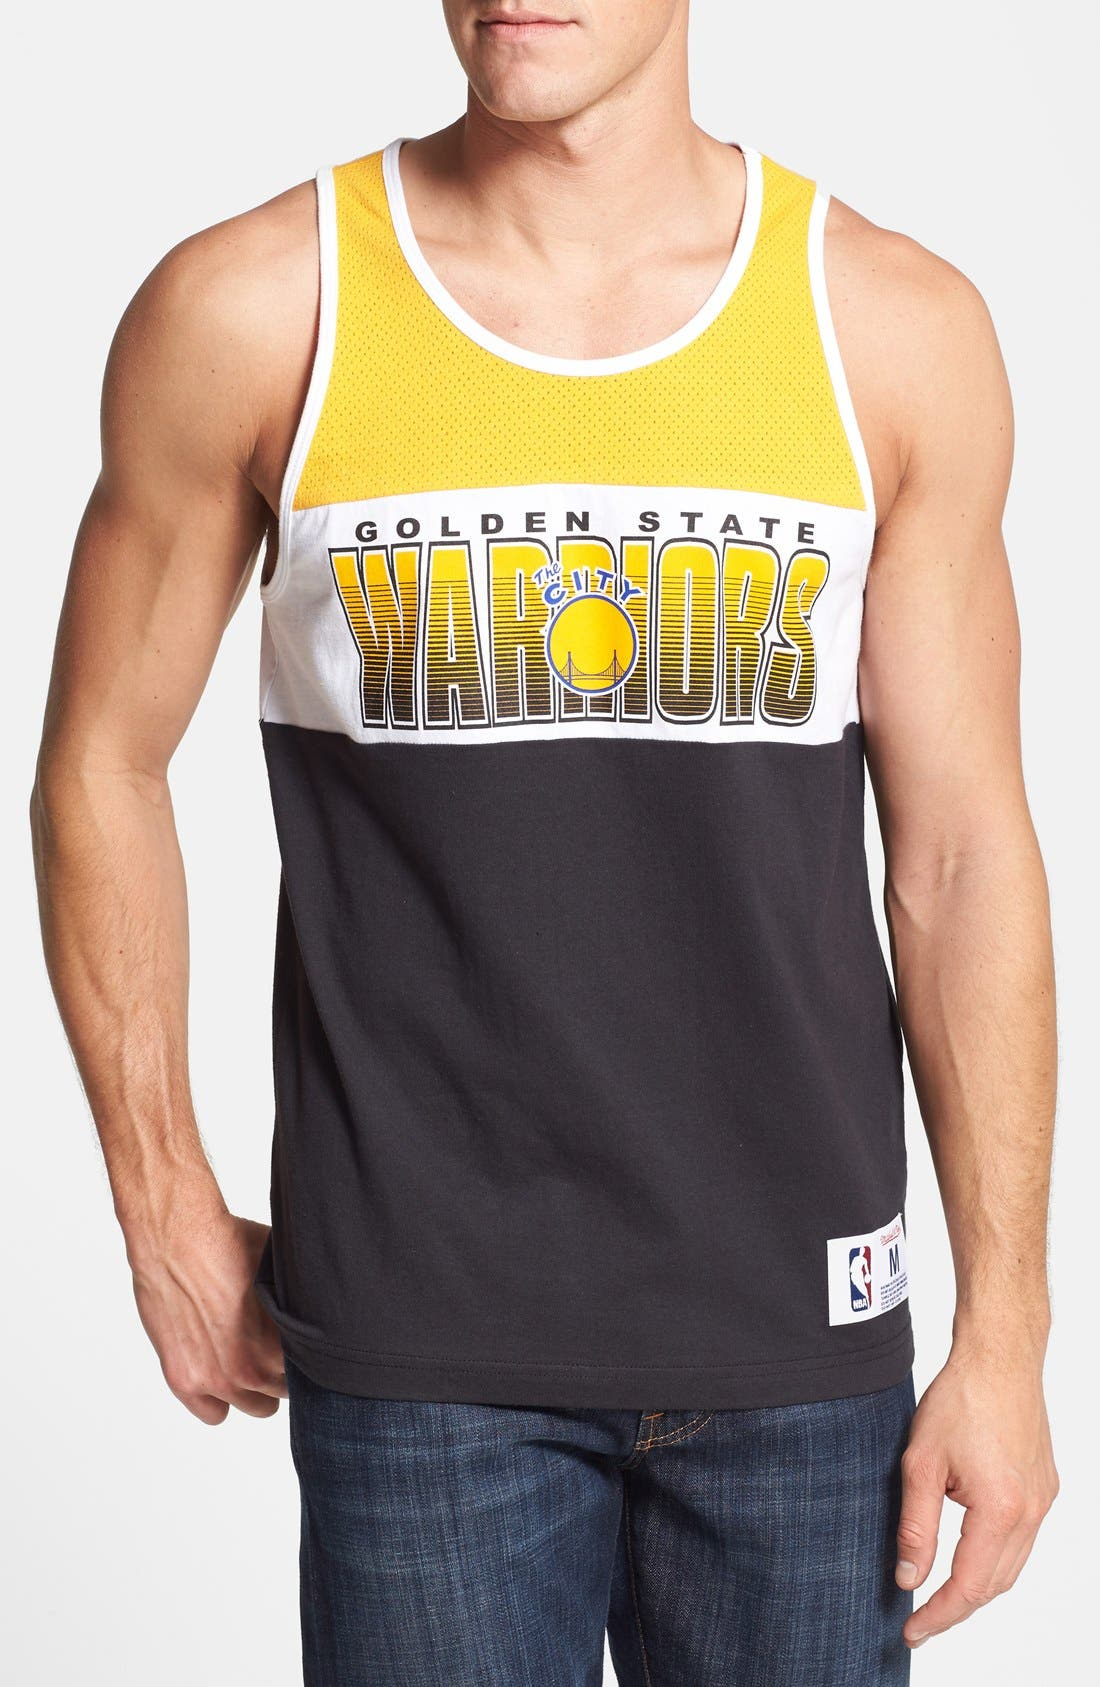 Main Image - Mitchell & Ness 'Golden State Warriors - Home Stand' Tank Top